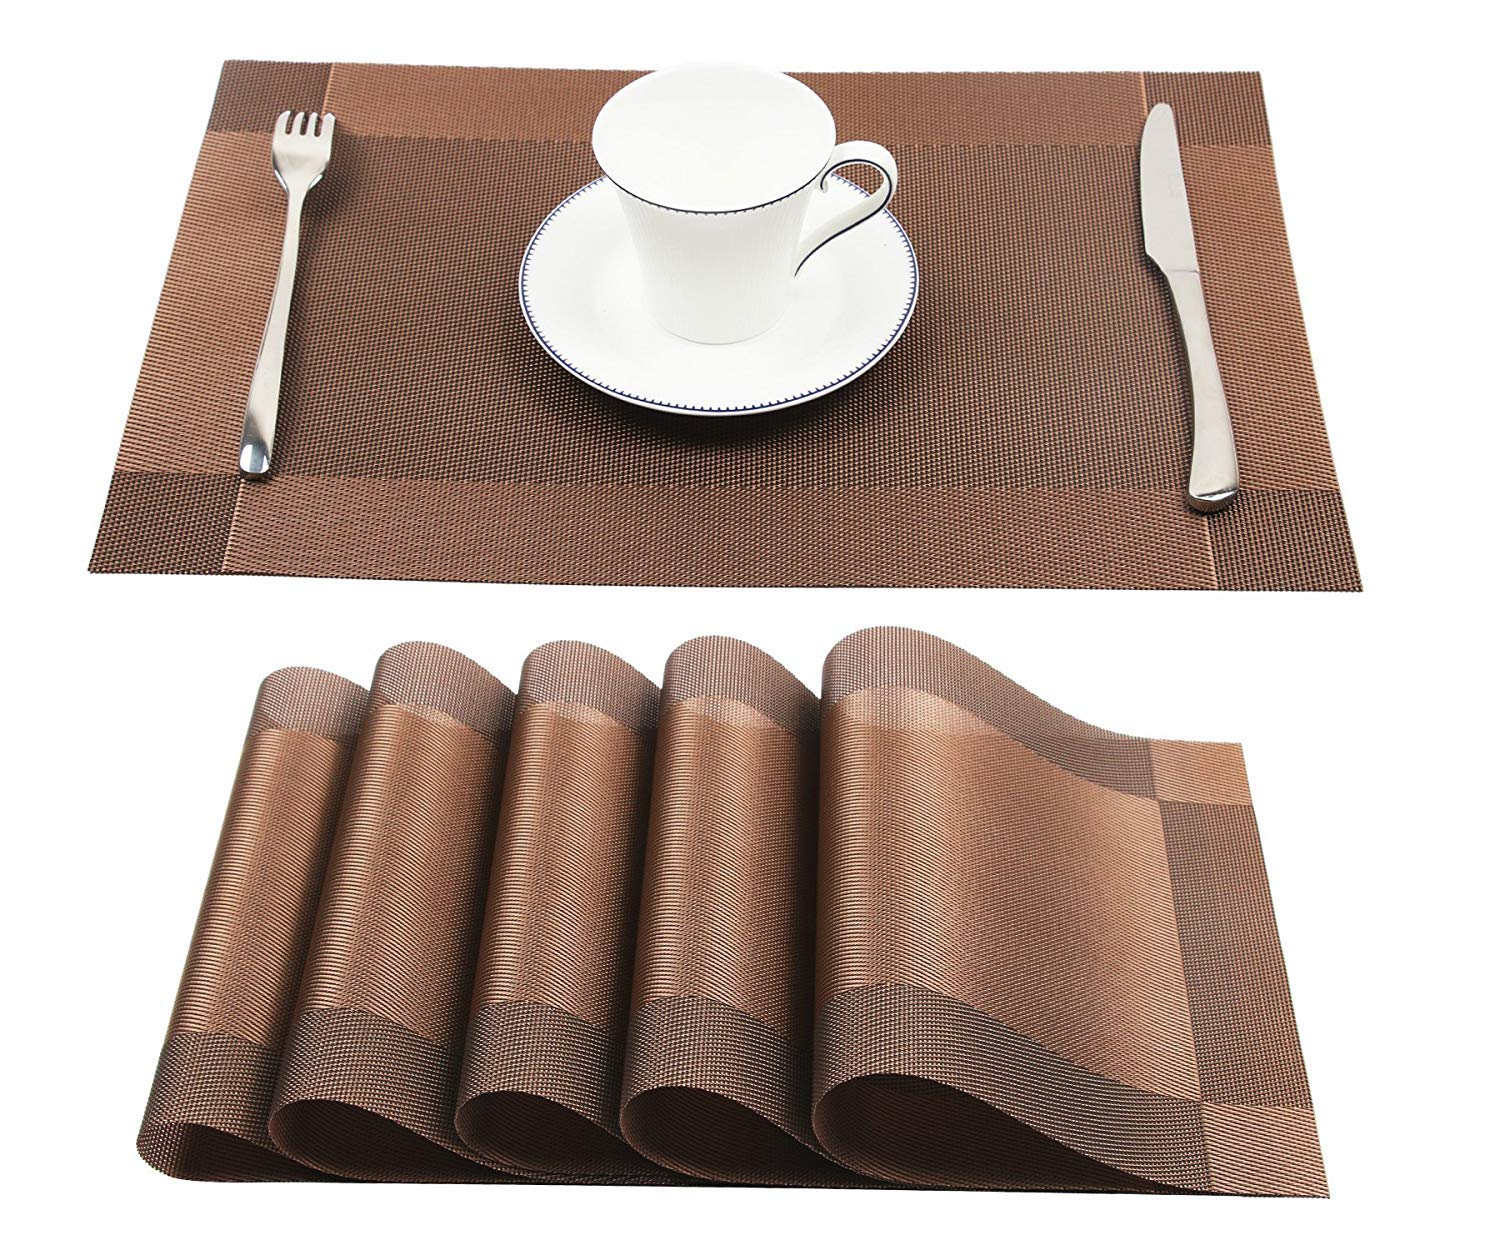 Non-Slip Placemats Washable Table Mats Set of 6 (Brown) ART OKAY